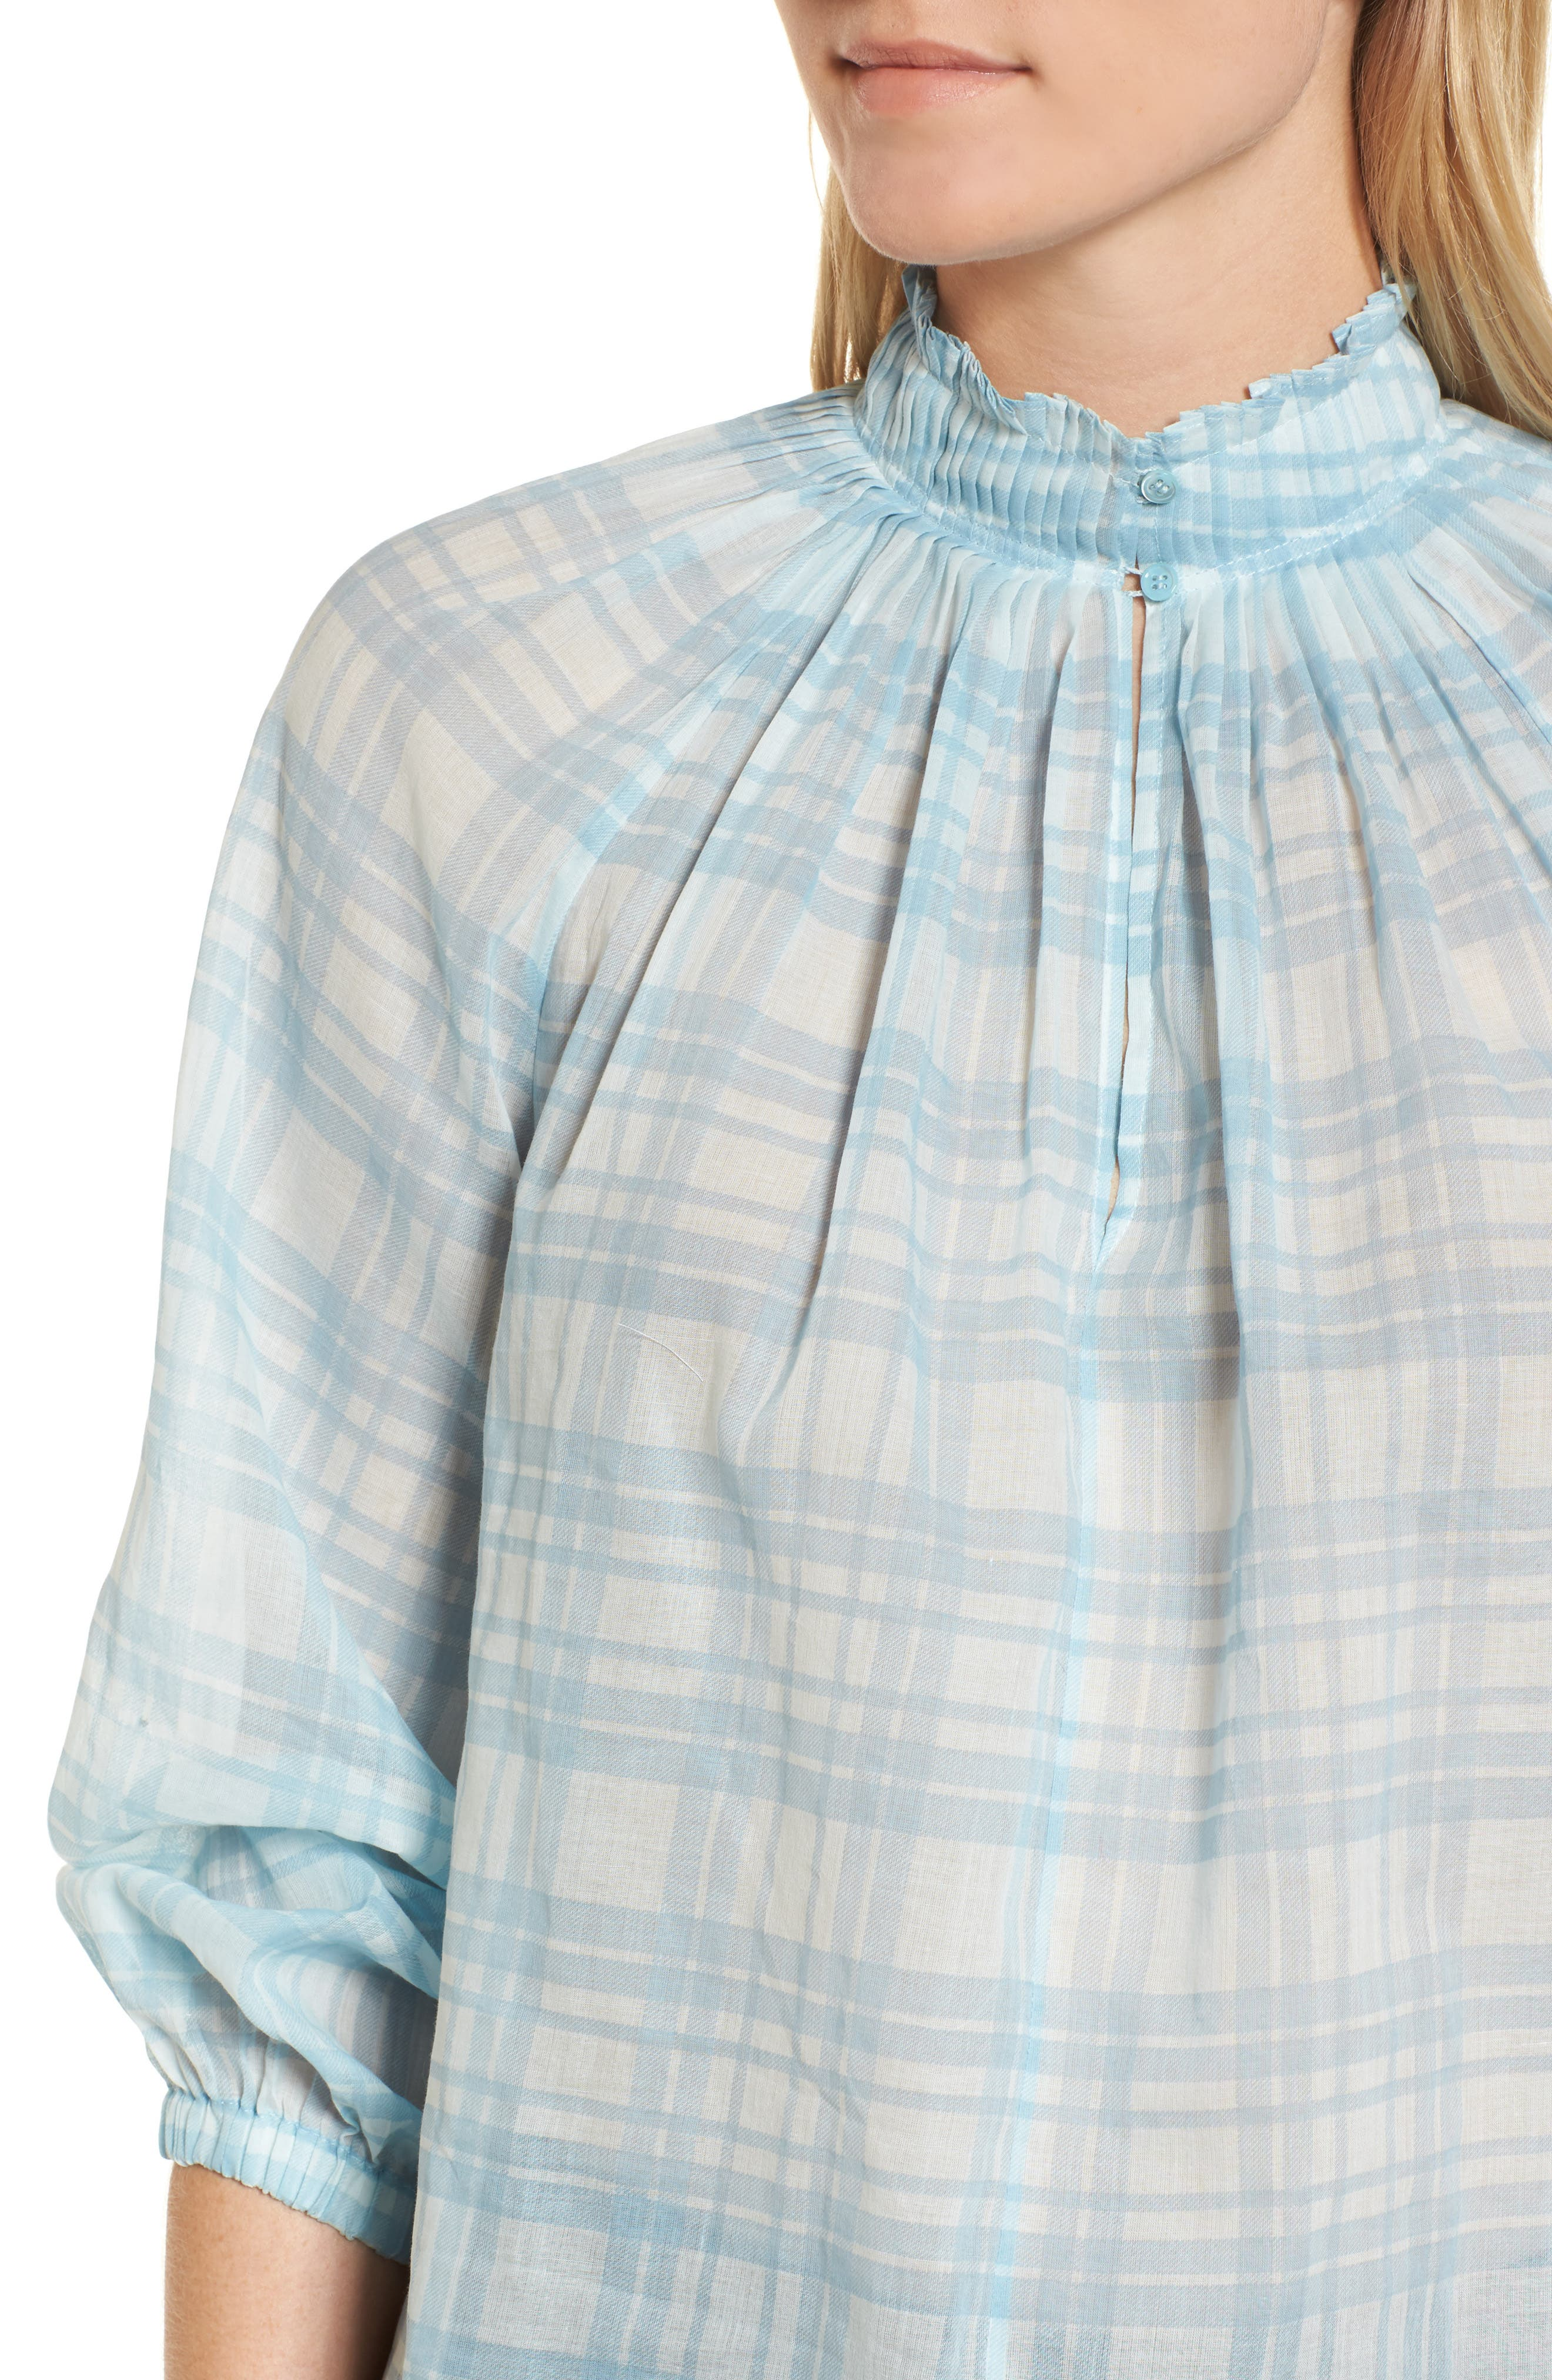 Pleated Detail Top,                             Alternate thumbnail 4, color,                             450